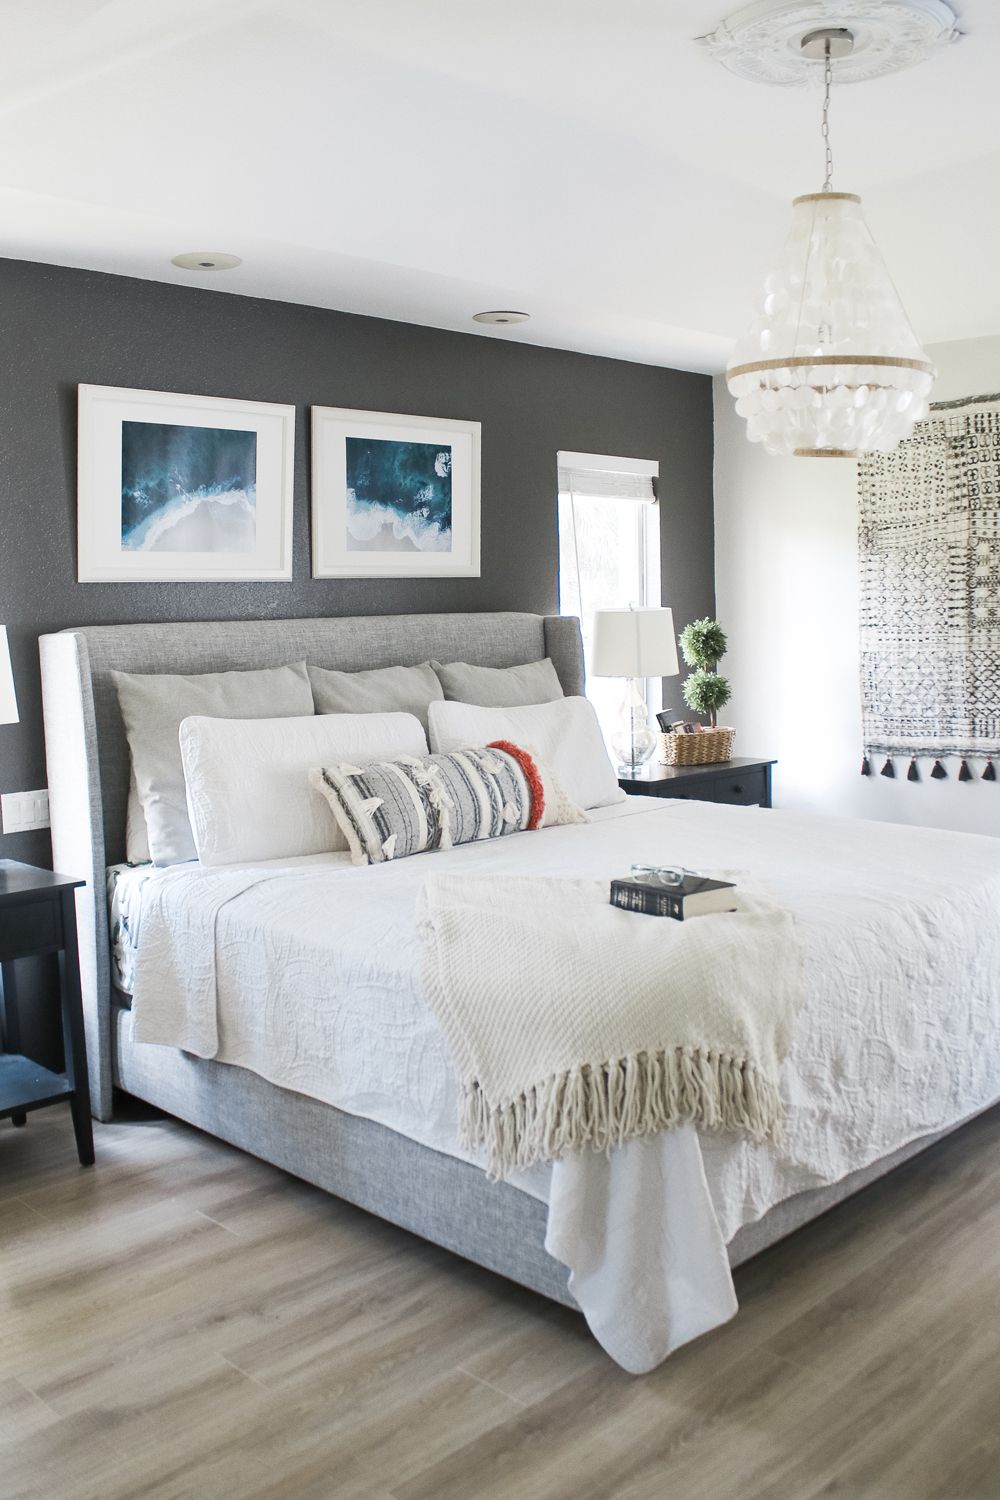 Get organized 5 things for 5 min in 2020 accent wall